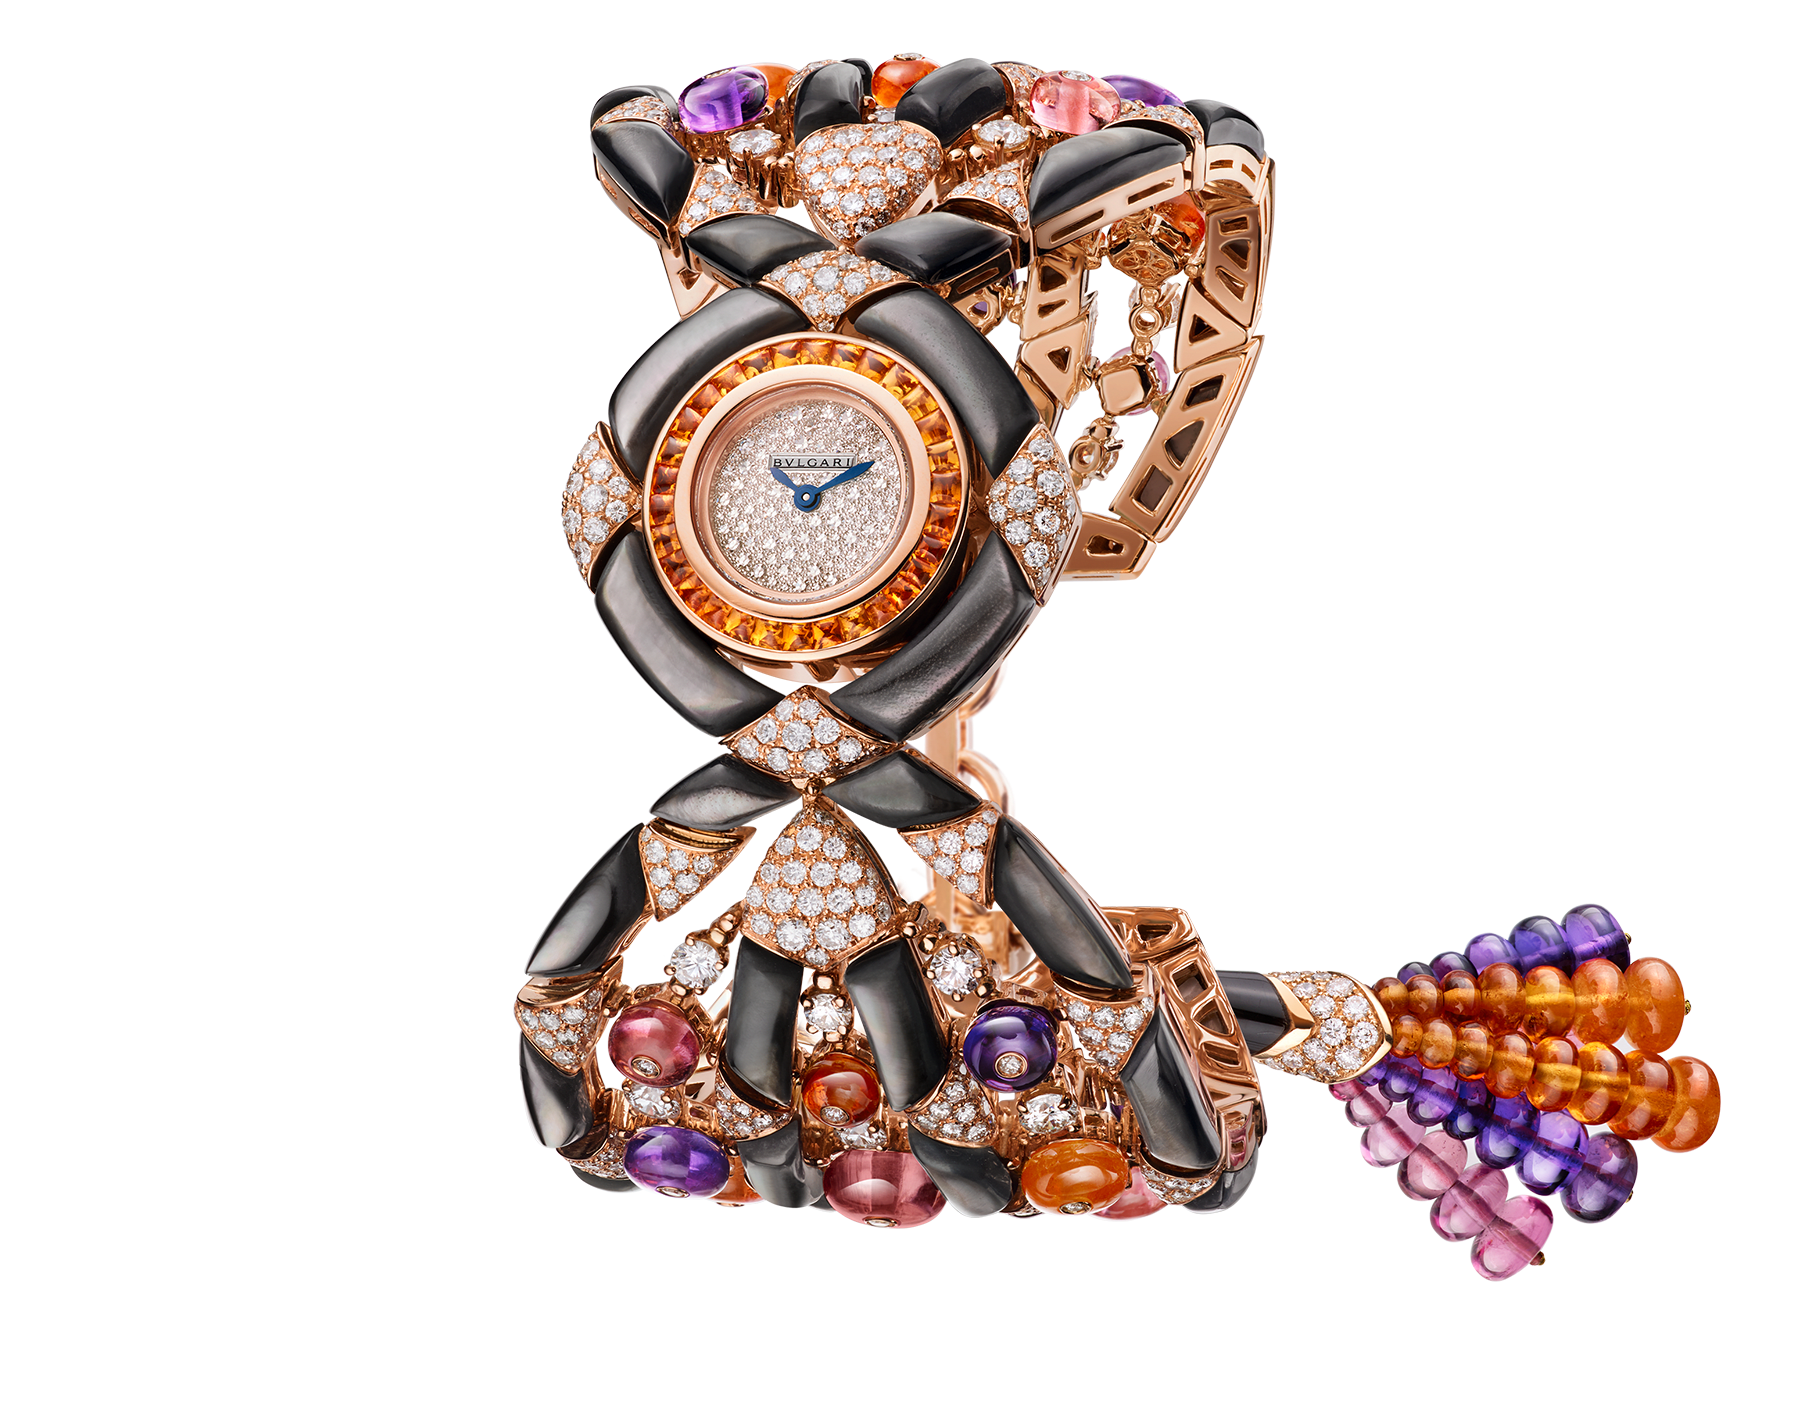 Gemma watch with 18 kt rose gold case set with buff-cut spessartite, brilliant cut-diamonds and black mother-of-pearl elements, snow pavé dial, 18 kt rose gold bracelet set with tourmaline, spessartite and amethyst beads, black mother-of-pearl elements and brilliant-cut diamonds 102242 image 1